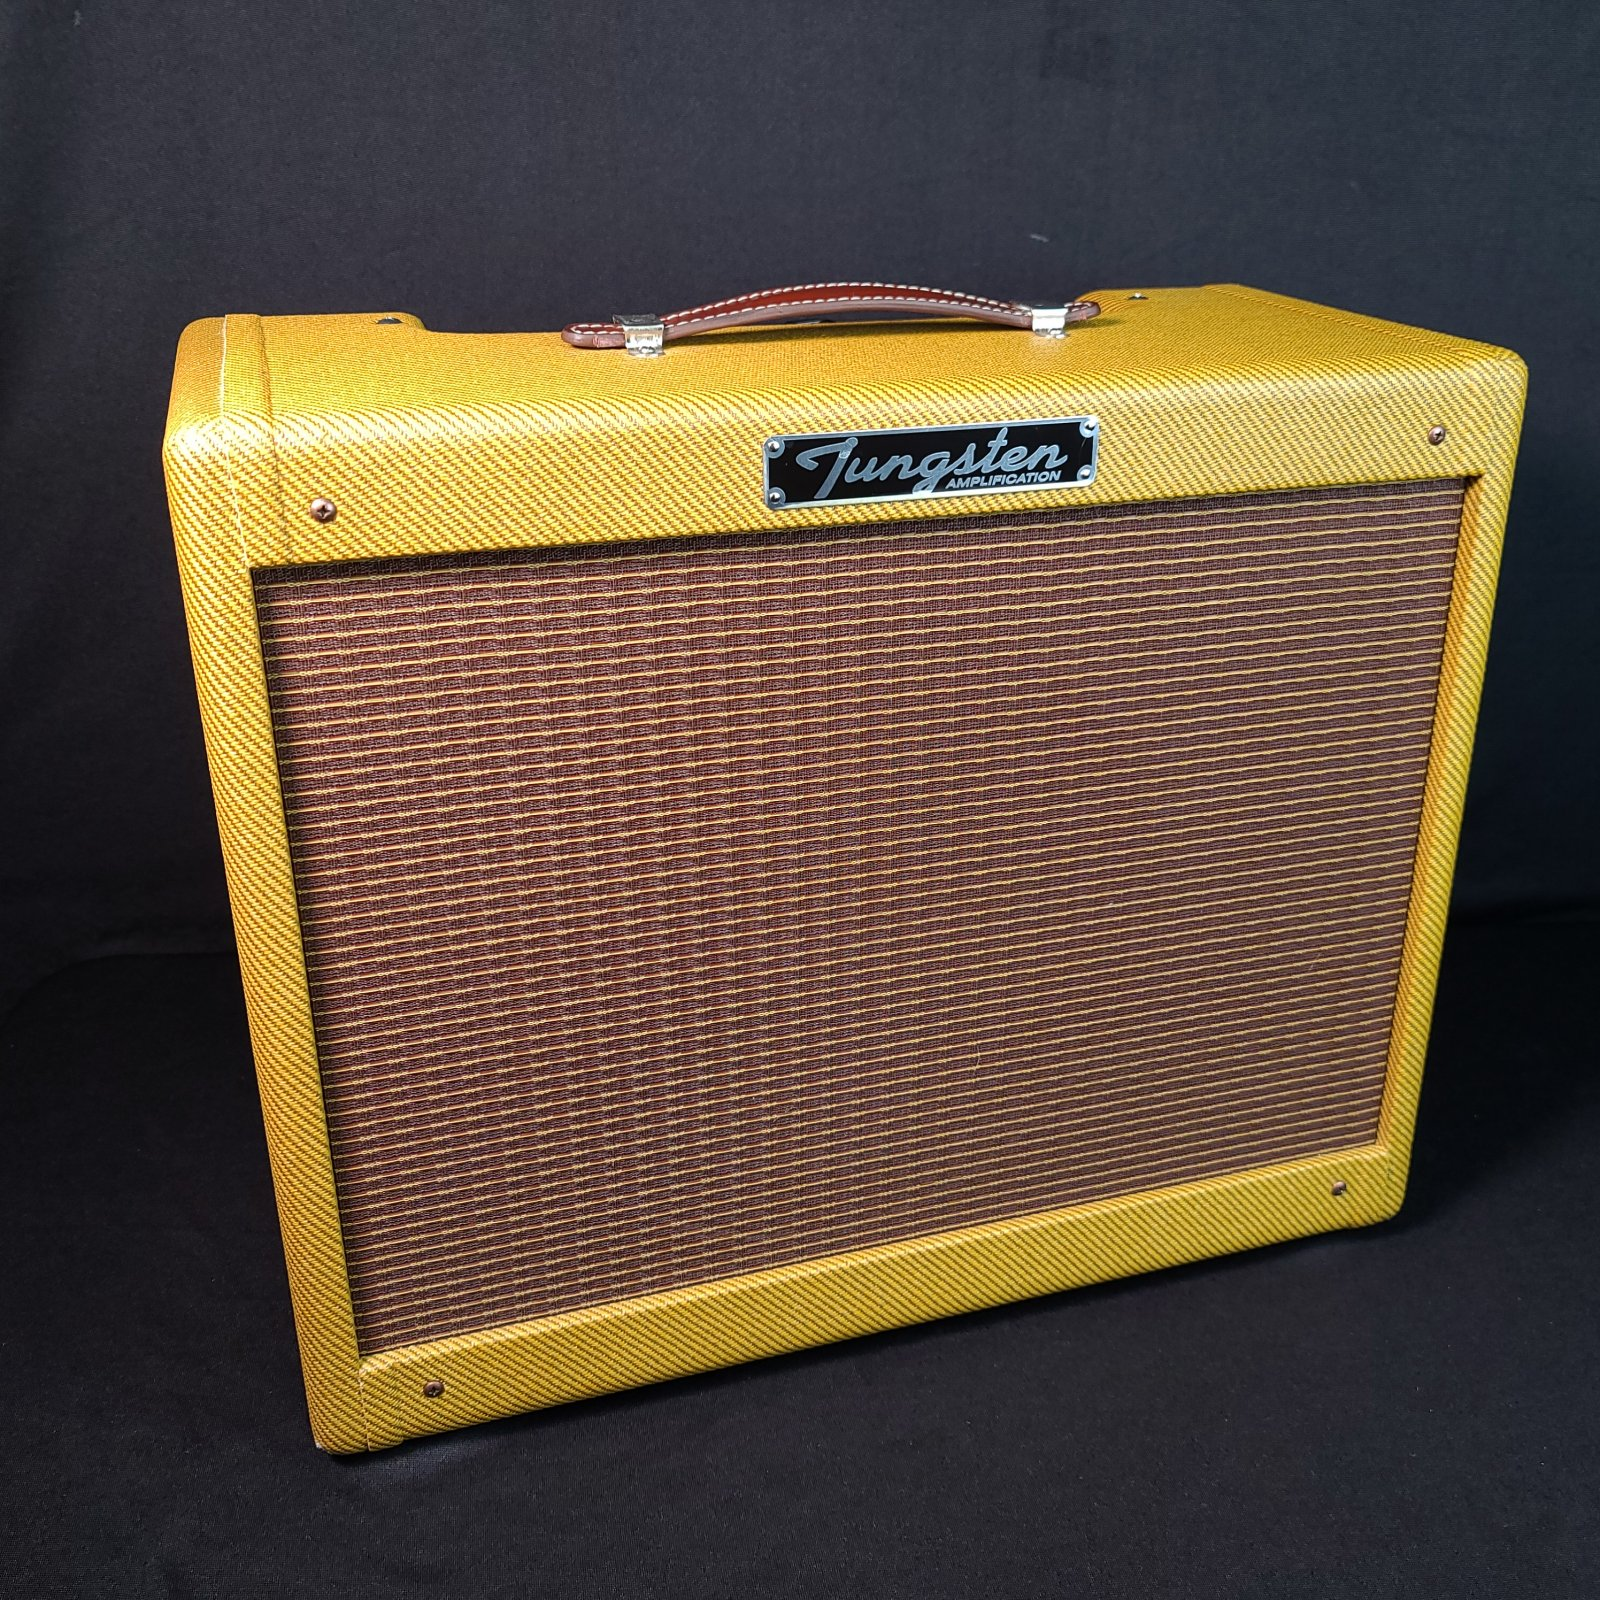 USED Tungsten Oxnard 25 Tweed Electric Guitar Amplifier w/ Cover Serial Number #001